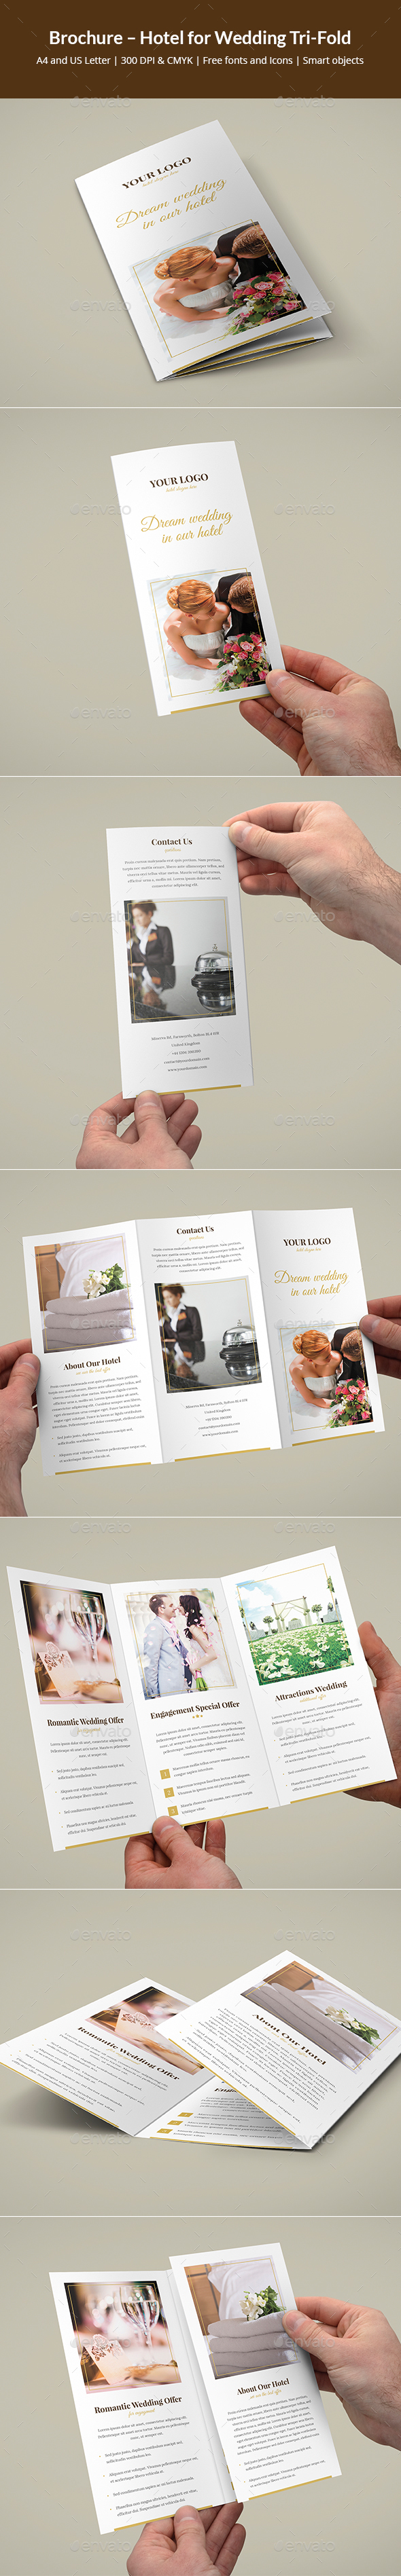 Brochure – Hotel for Wedding Tri-Fold - Corporate Brochures